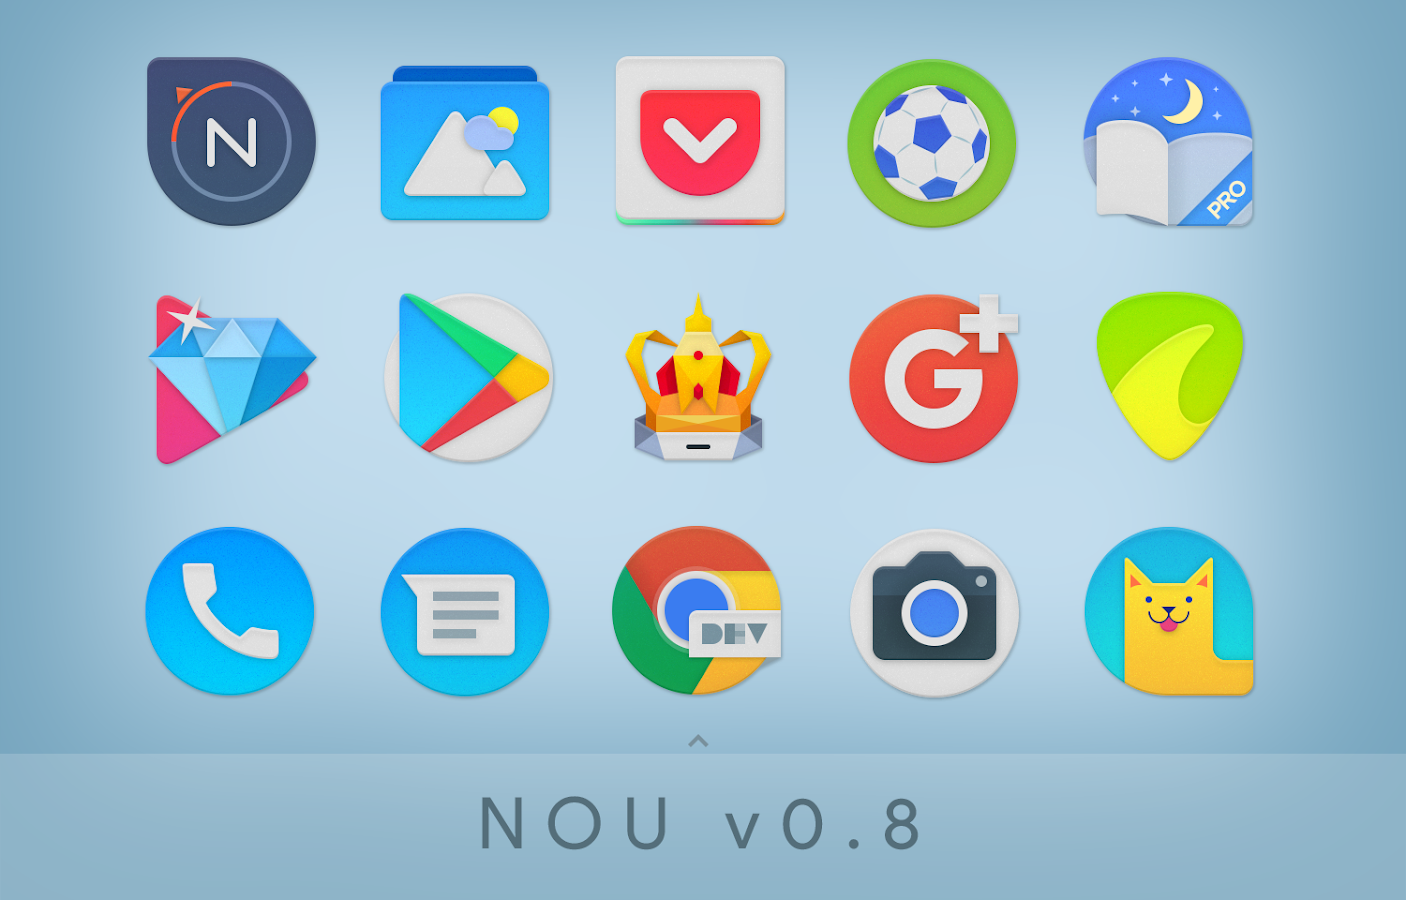 NOU - Icon Pack Screenshot 2